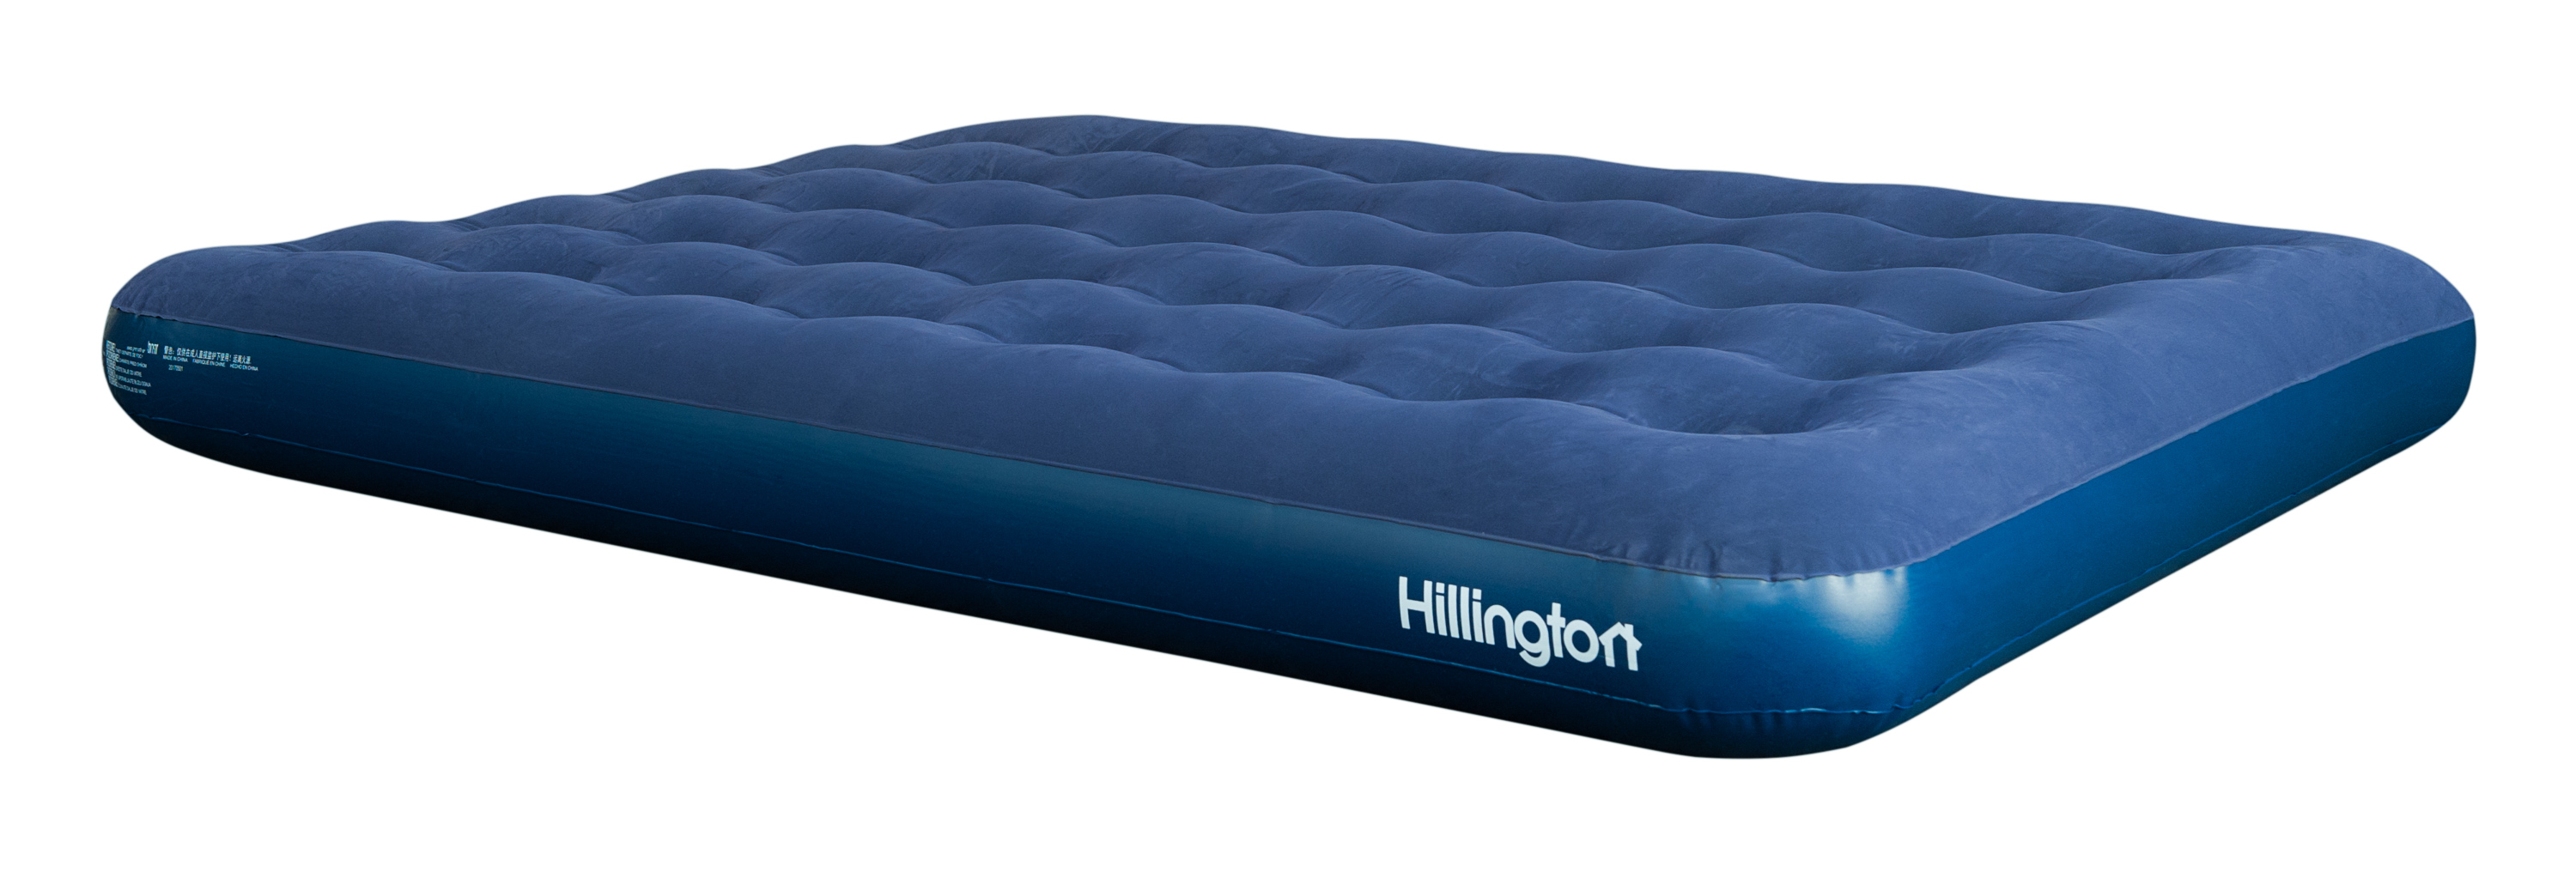 new inflatable double flocked air bed camping luxury relax. Black Bedroom Furniture Sets. Home Design Ideas